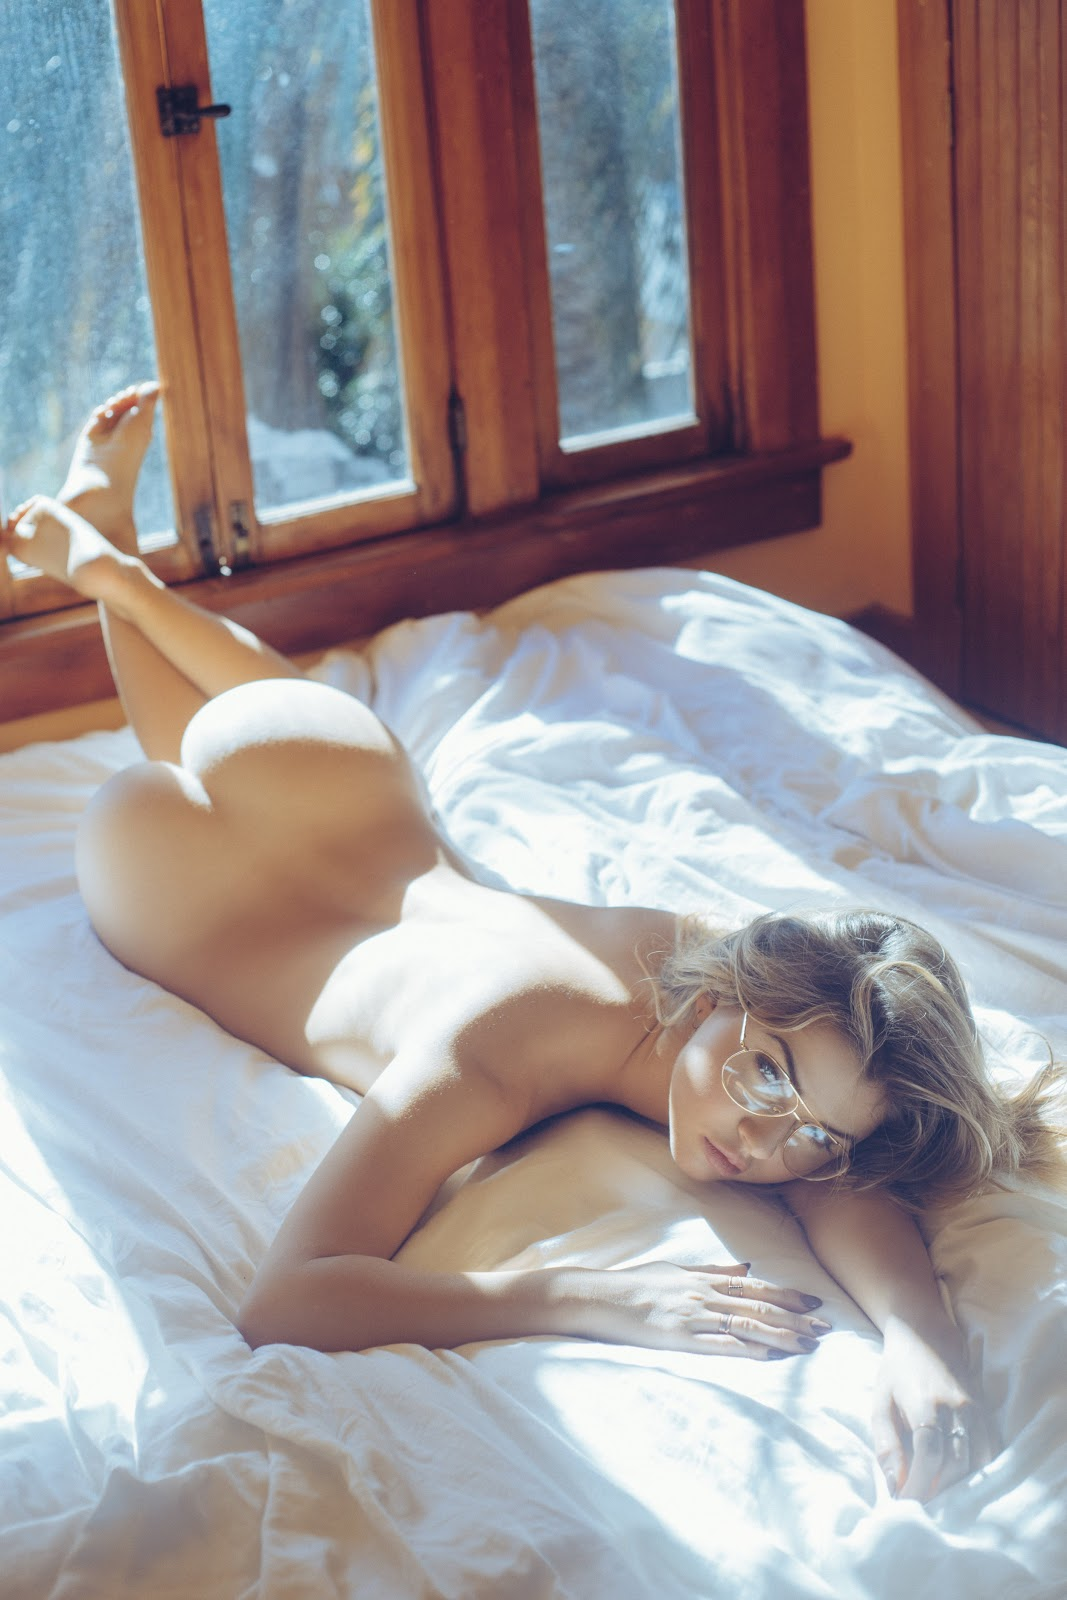 Bed nude How to